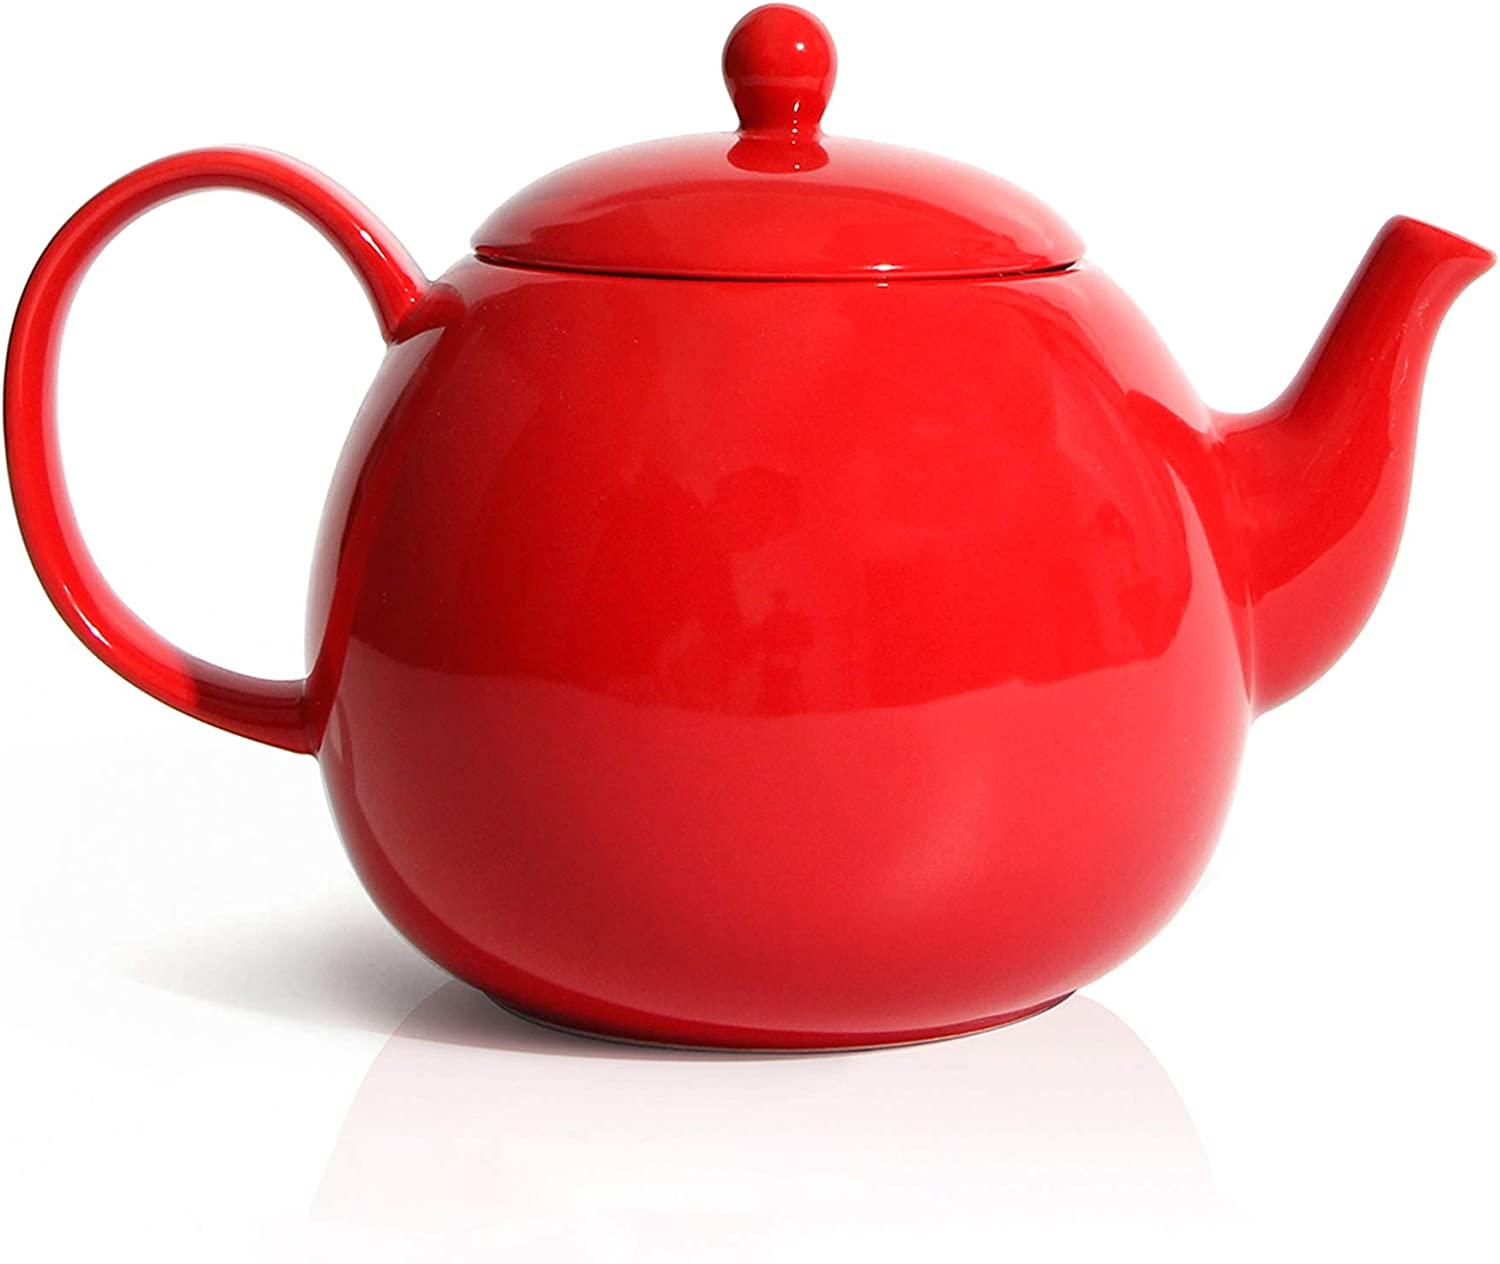 Amazon Com Sweese 220 104 Porcelain Teapot 40 Ounce Tea Pot Large Enough For 5 Cups Red Teapots